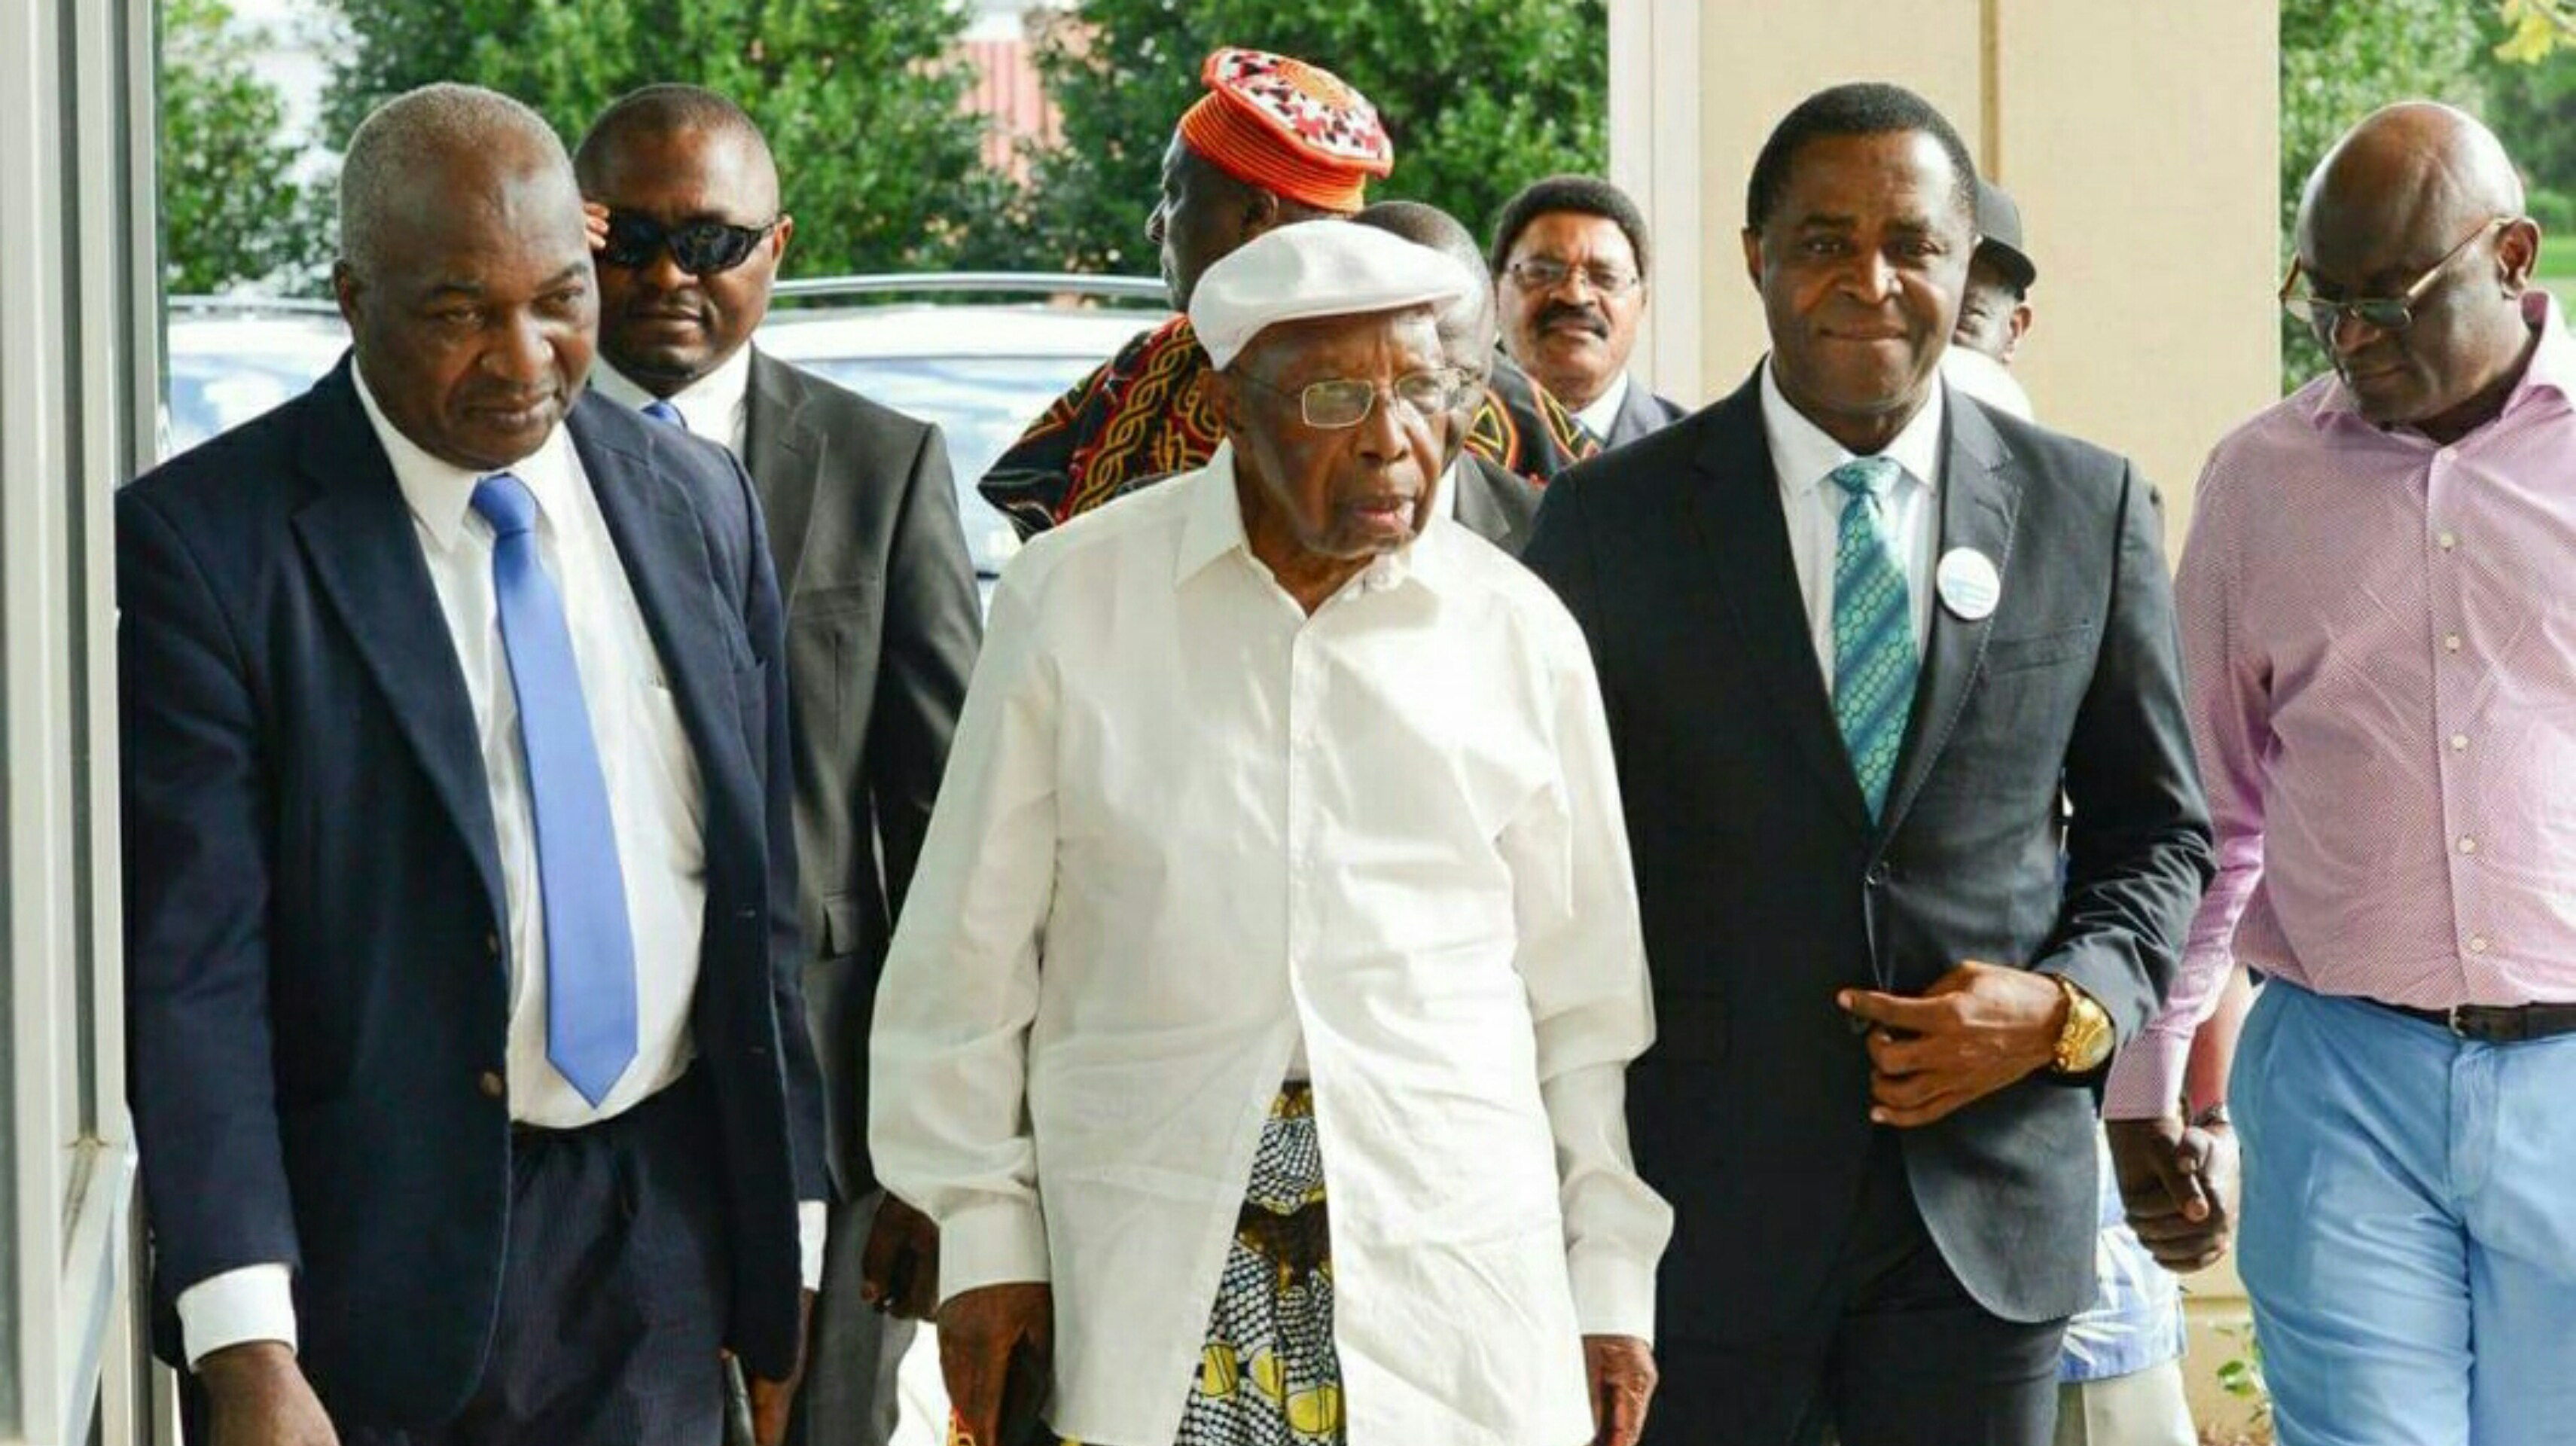 Ambazonia: Head of State promises to keep military options open against La Republique